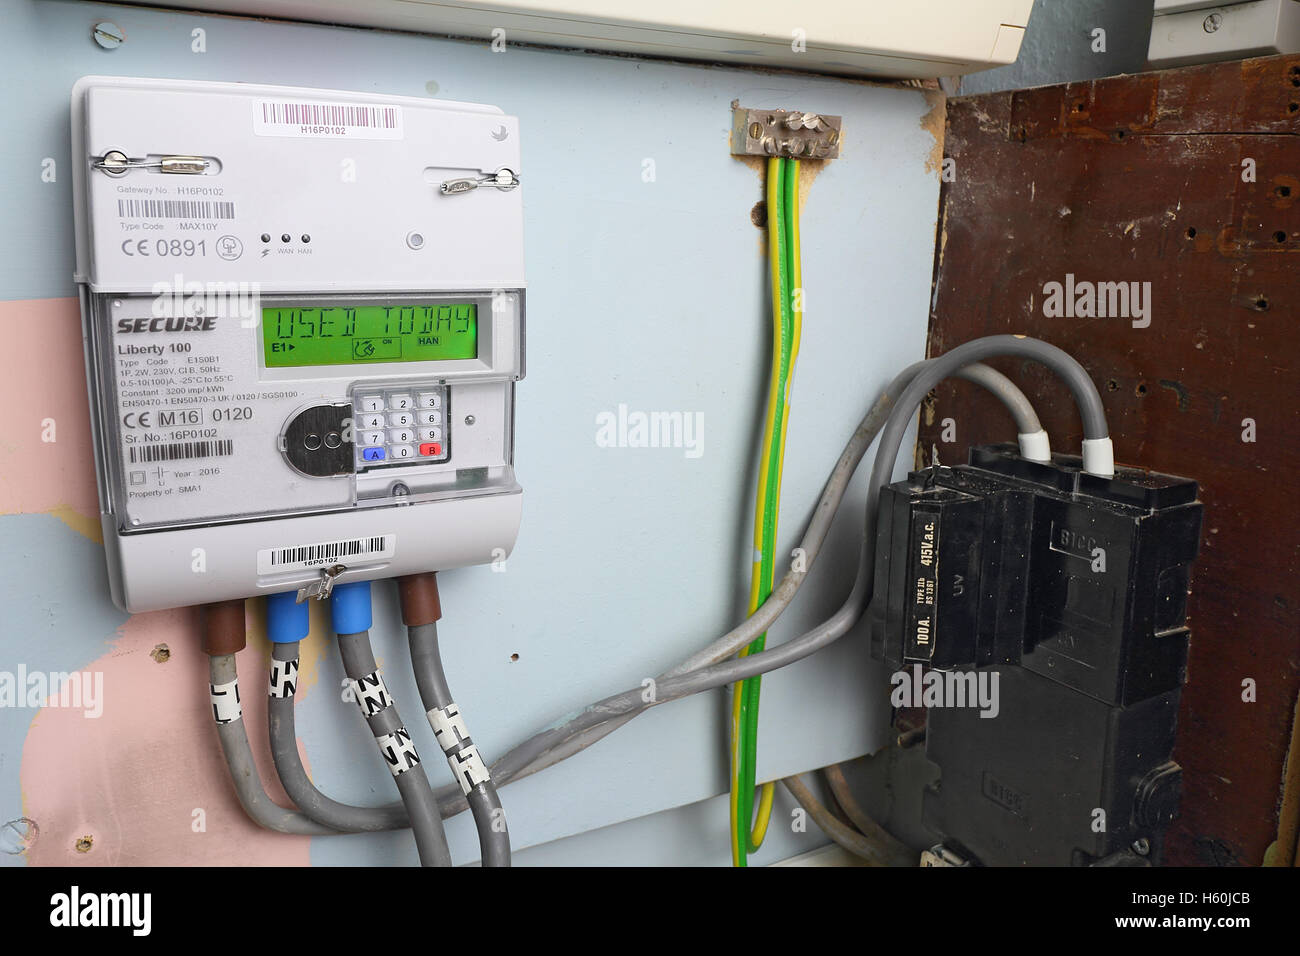 Smart gas meter can be read remotely and supply real time information to the home owner - Stock Image